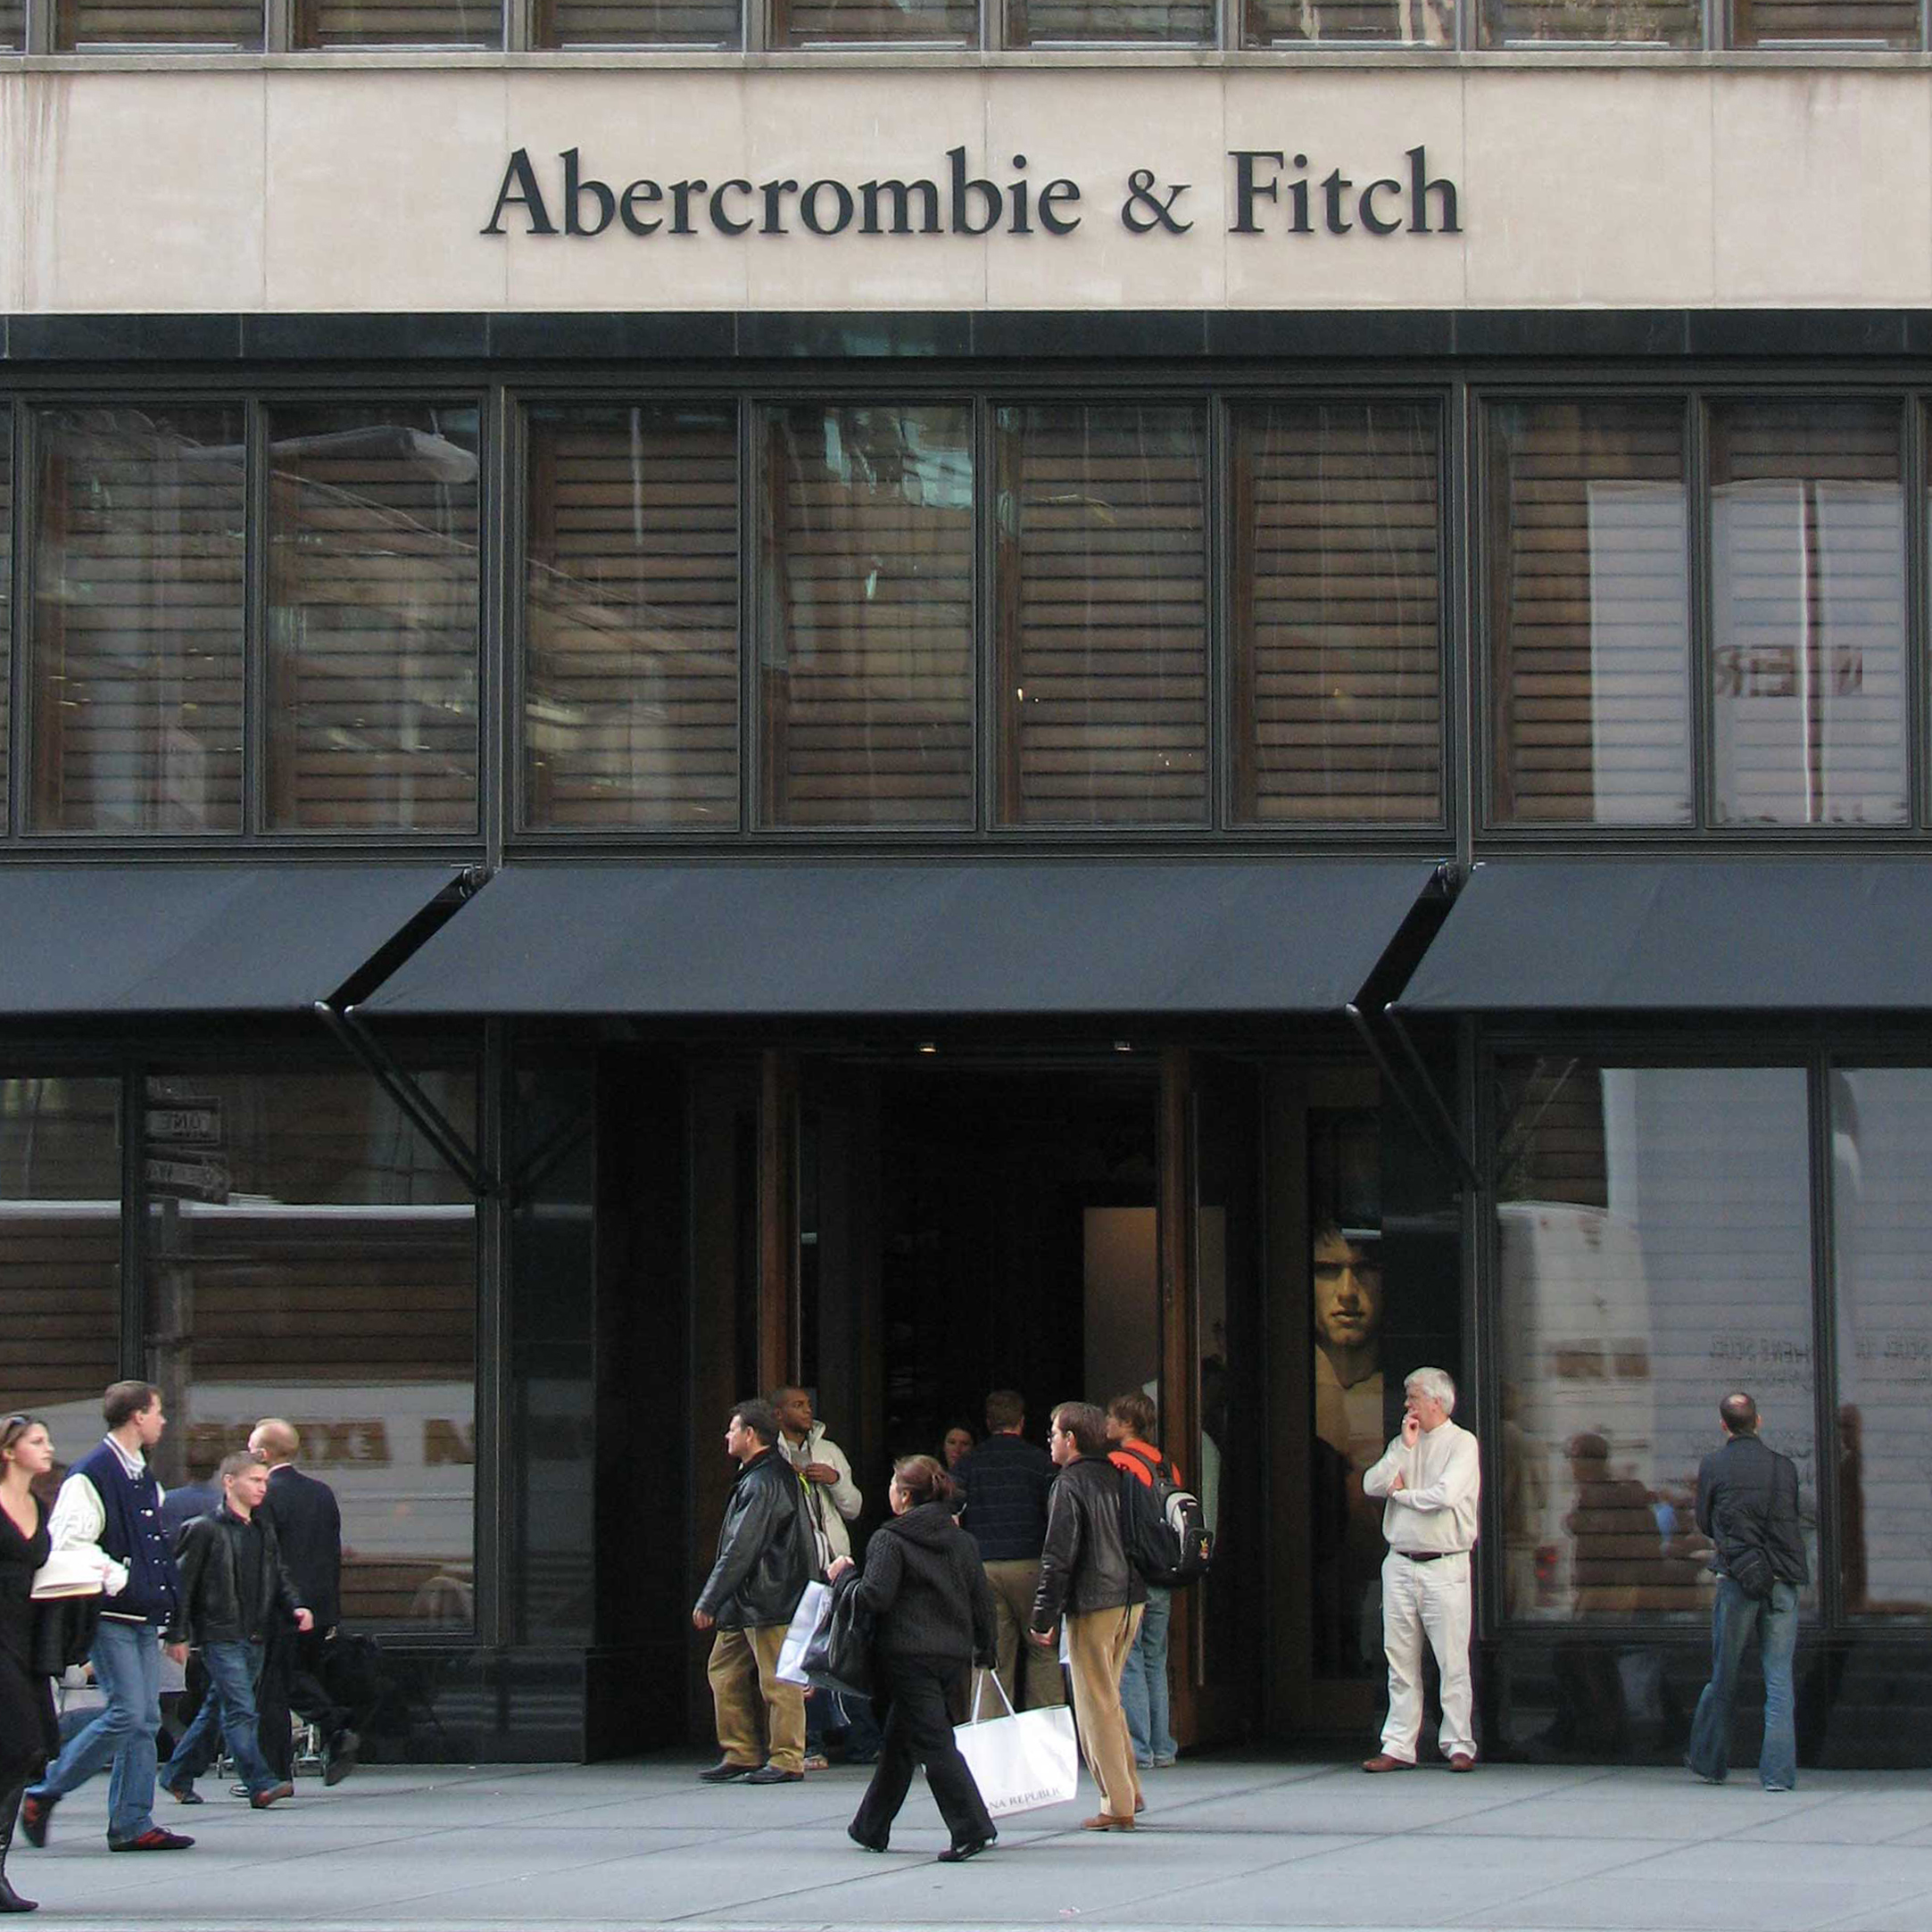 File:Abercrombie & Fitch store in New York City.jpg ...